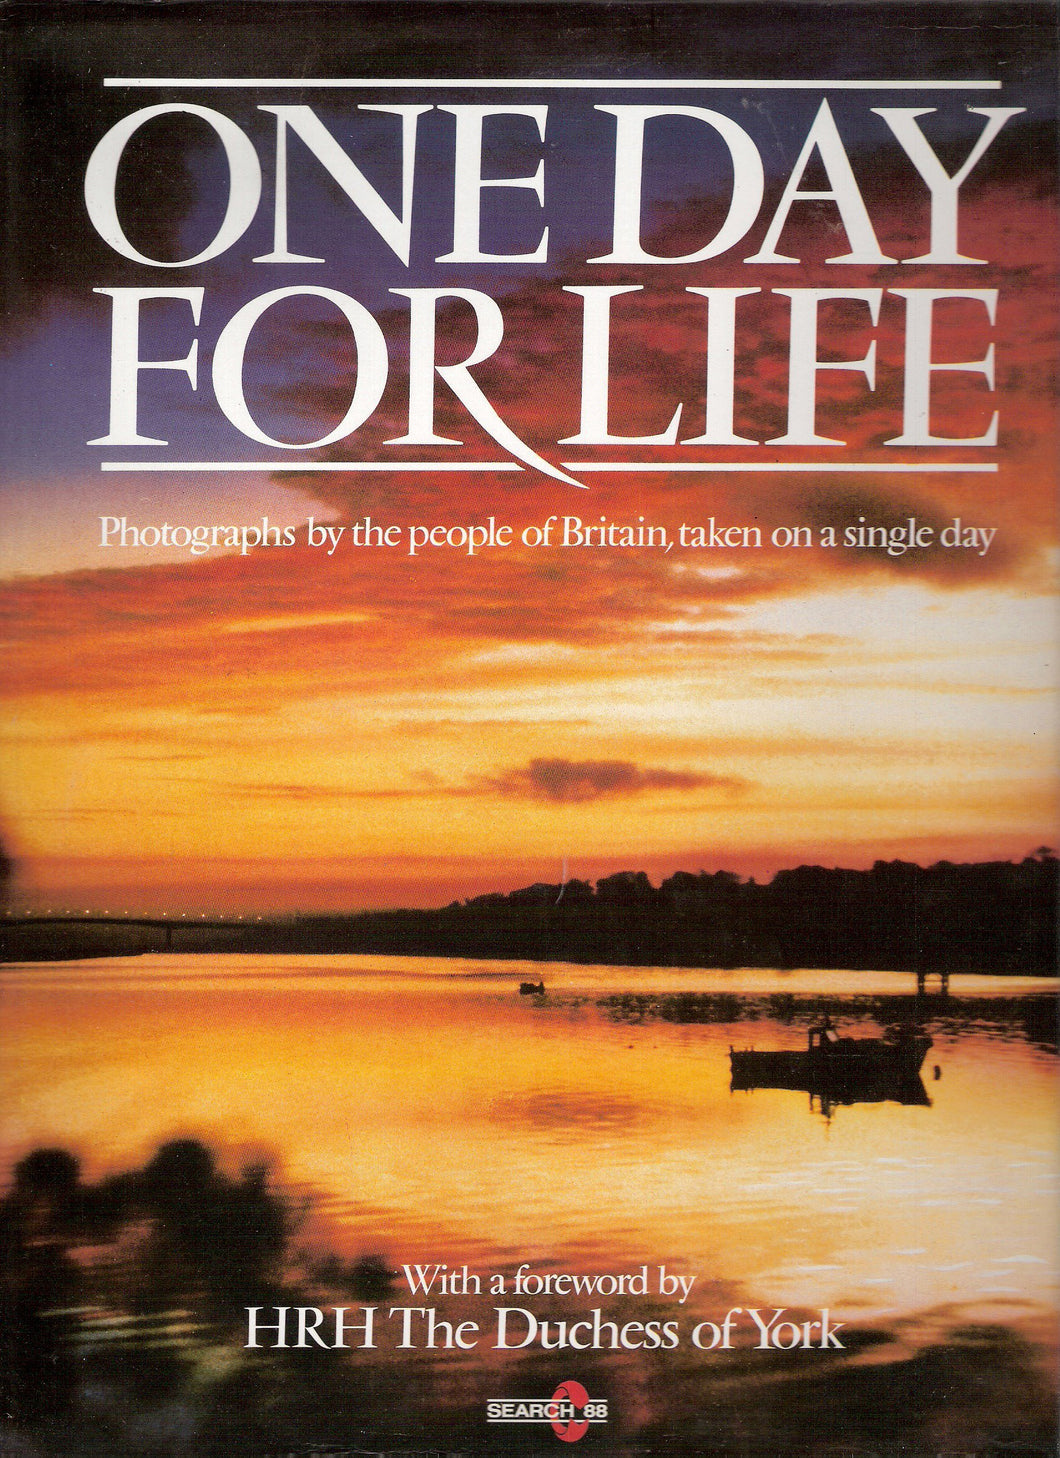 One Day For Life [Hardcover] Unknown